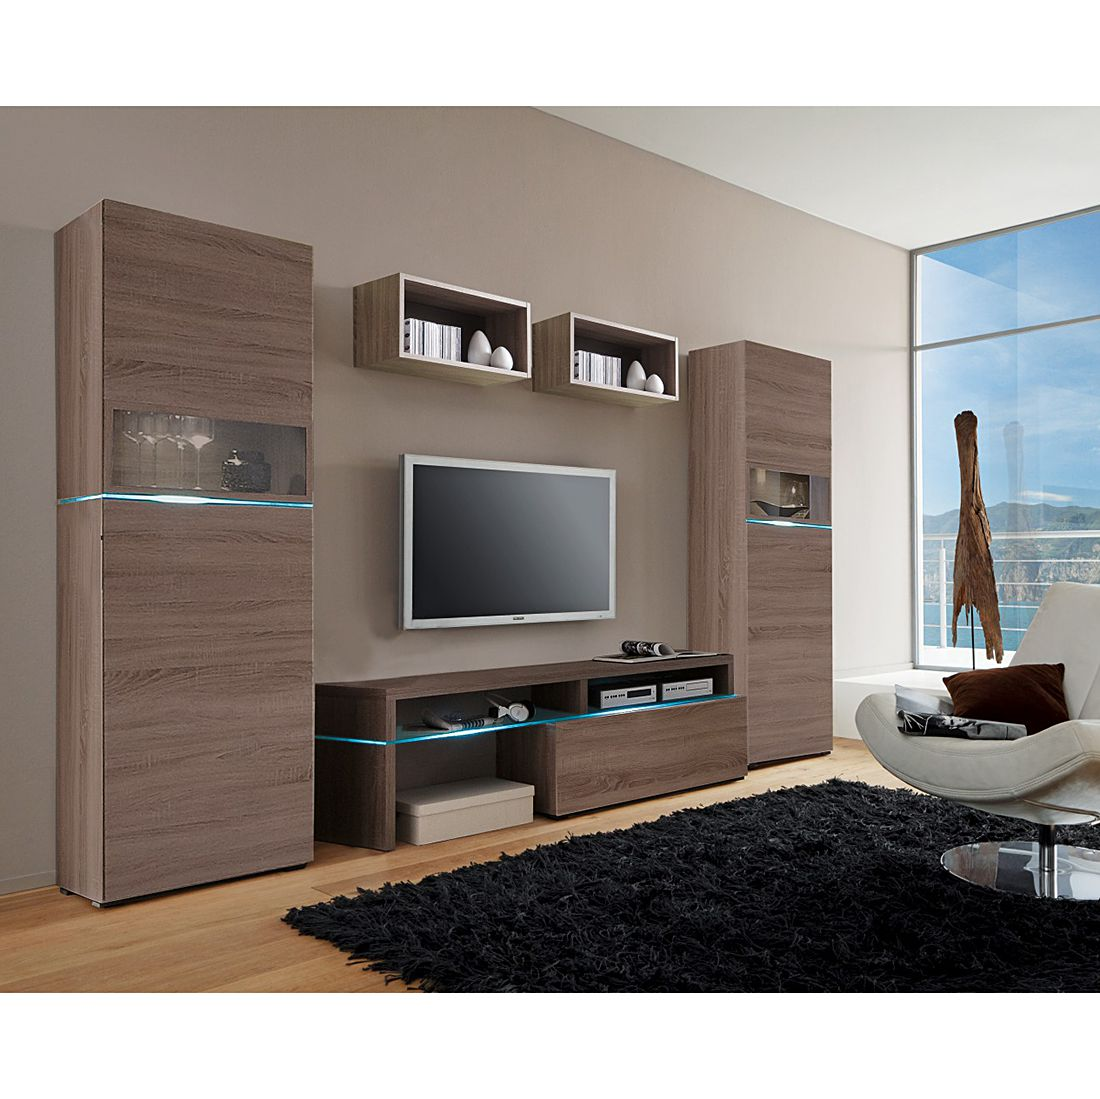 wohnwand colourart 5 teilig eiche dekor sonoma. Black Bedroom Furniture Sets. Home Design Ideas